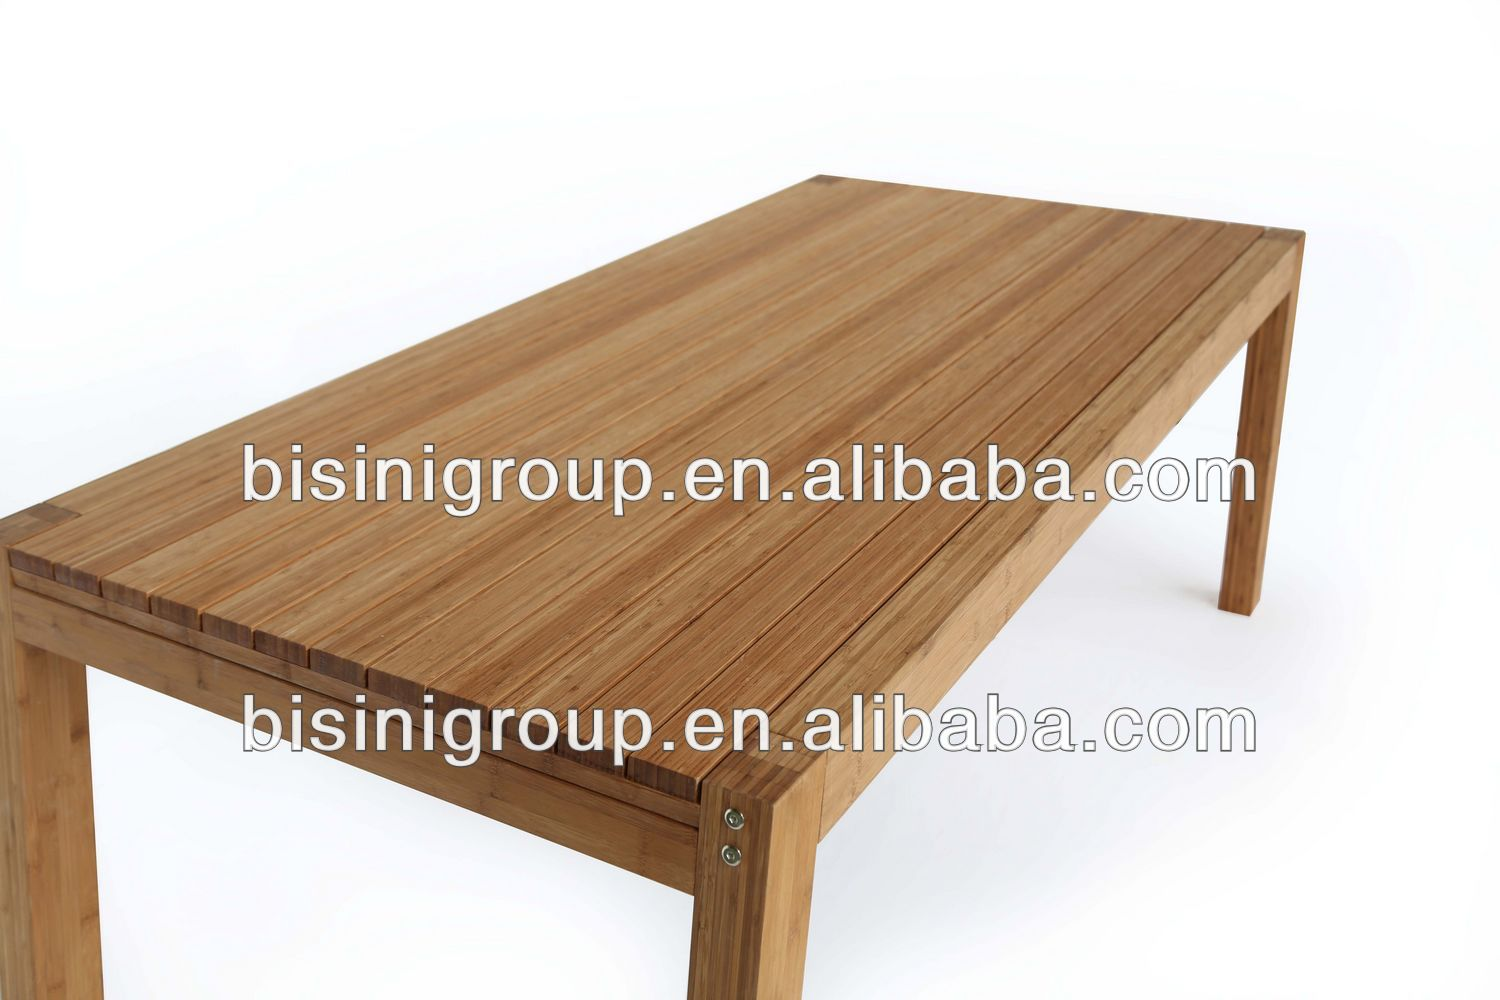 Bamboo furniture prices - Bamboo Furniture Bamboo Furniture Suppliers And Manufacturers At Alibaba Com